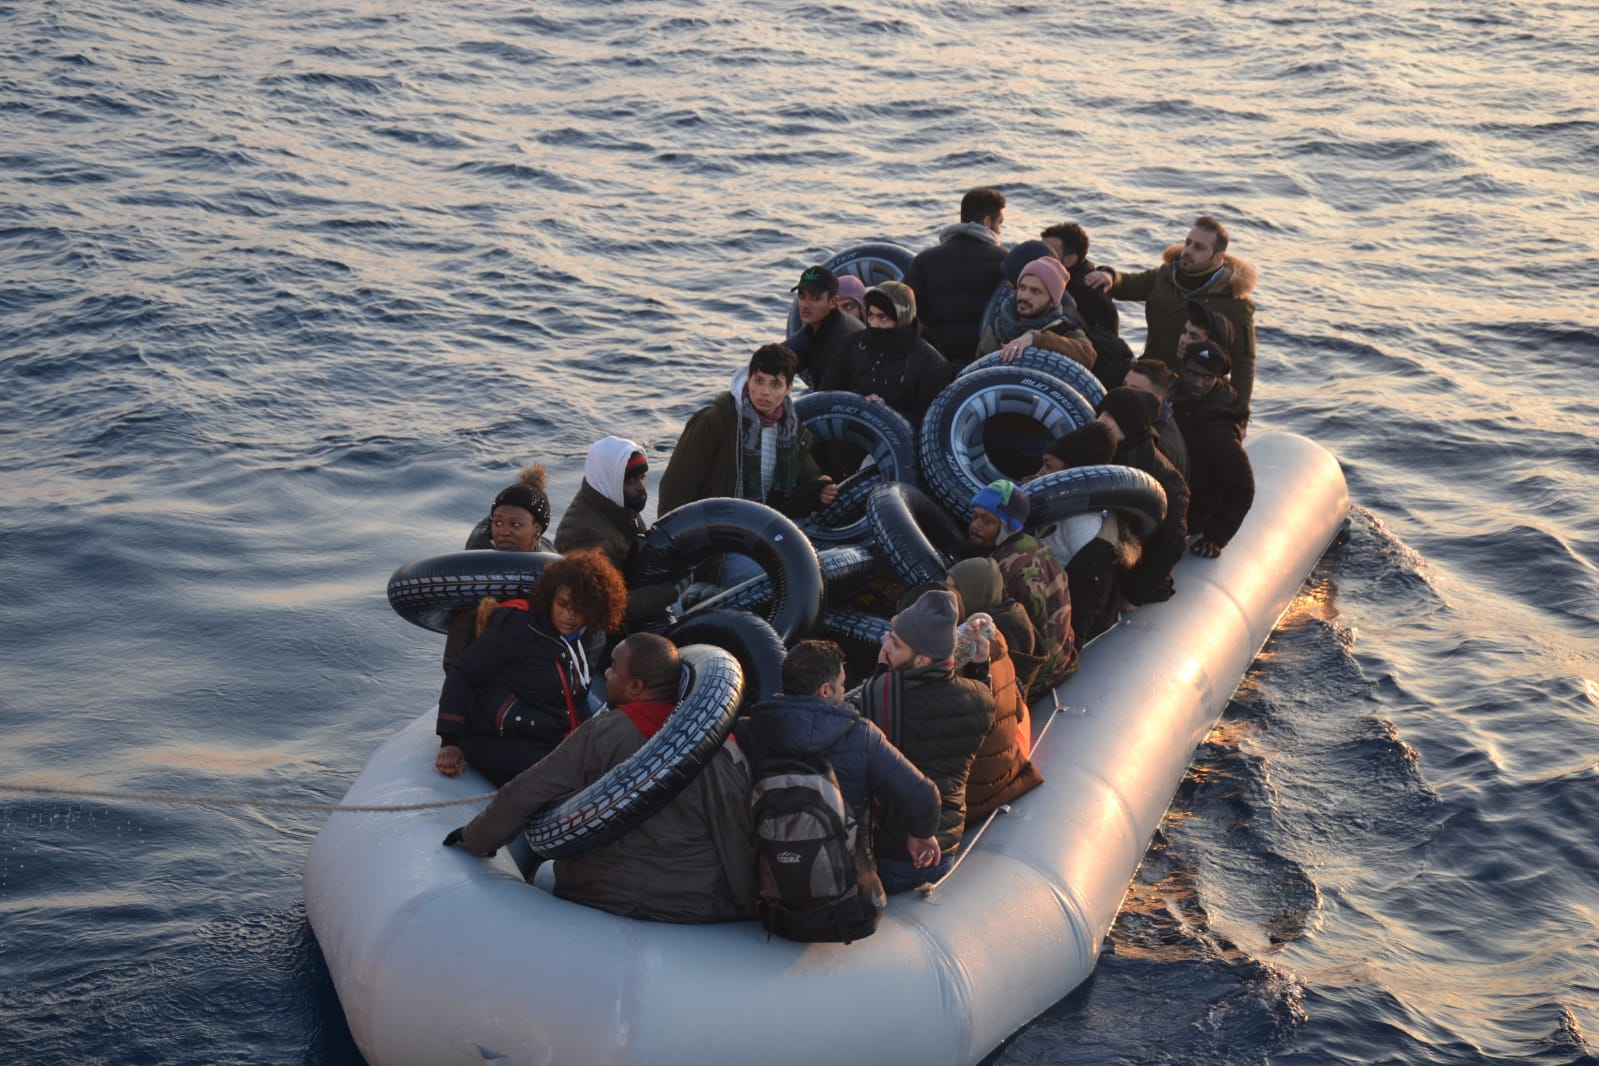 34 Irregular Migrants Were Rescued Off The Coast Of Muğla